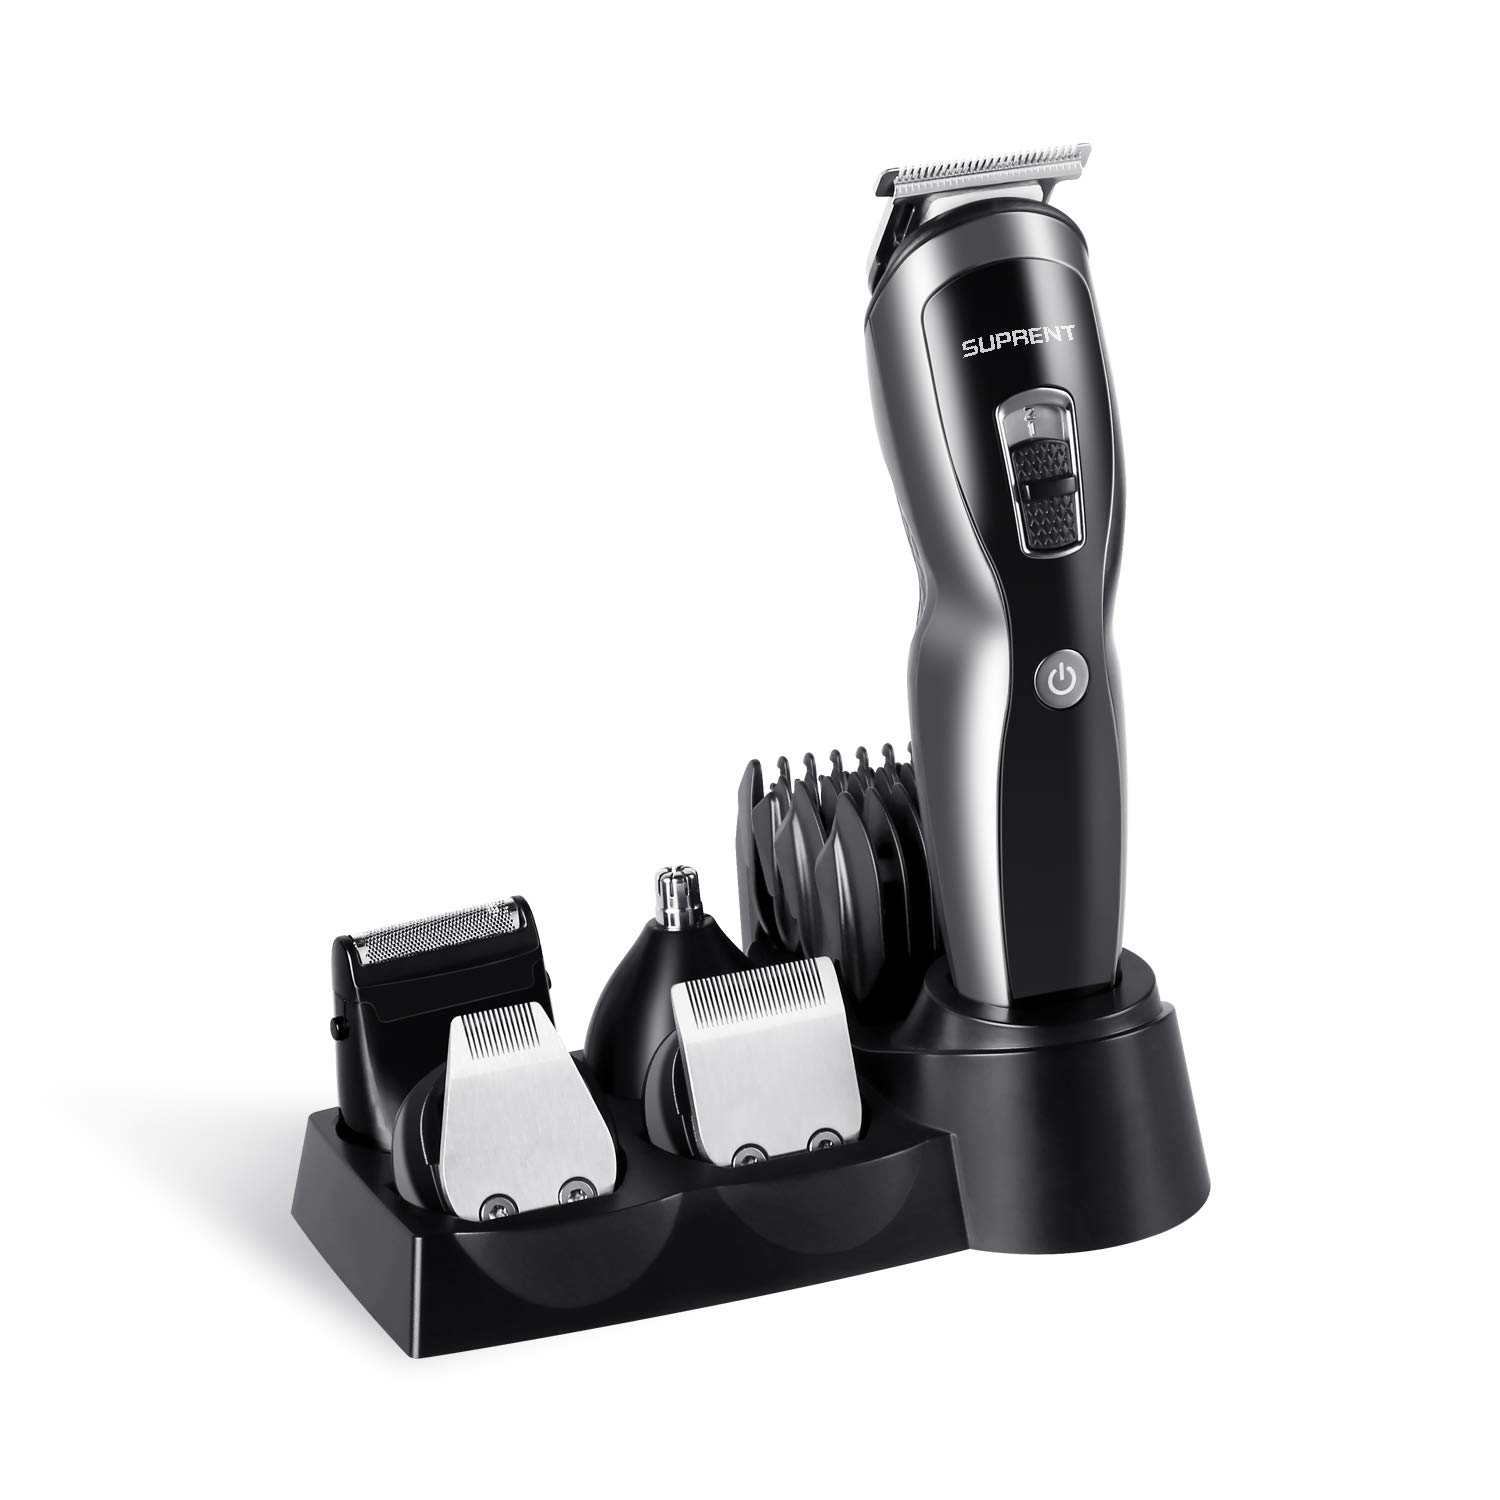 SUPRENT 11-in-1 Multi-functional Body Groomer Kit review